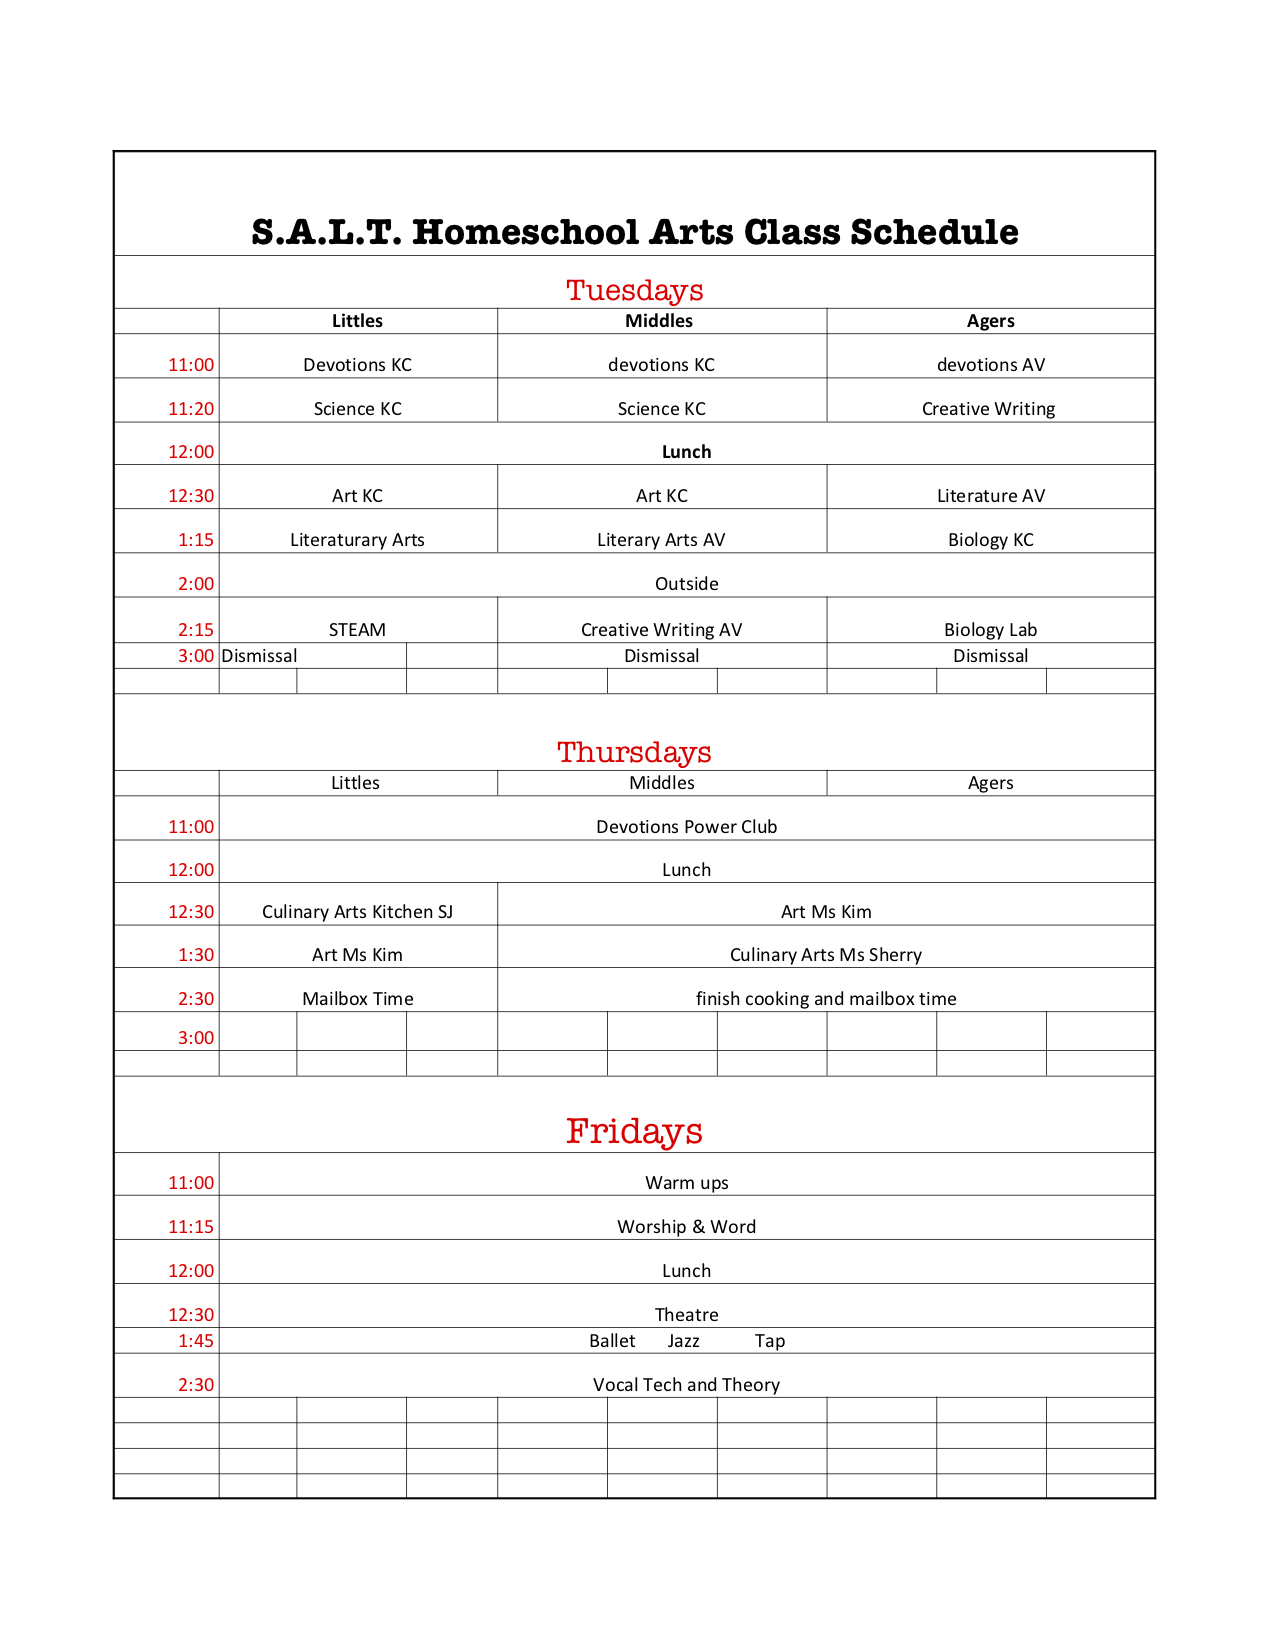 salt schedule 2019.png